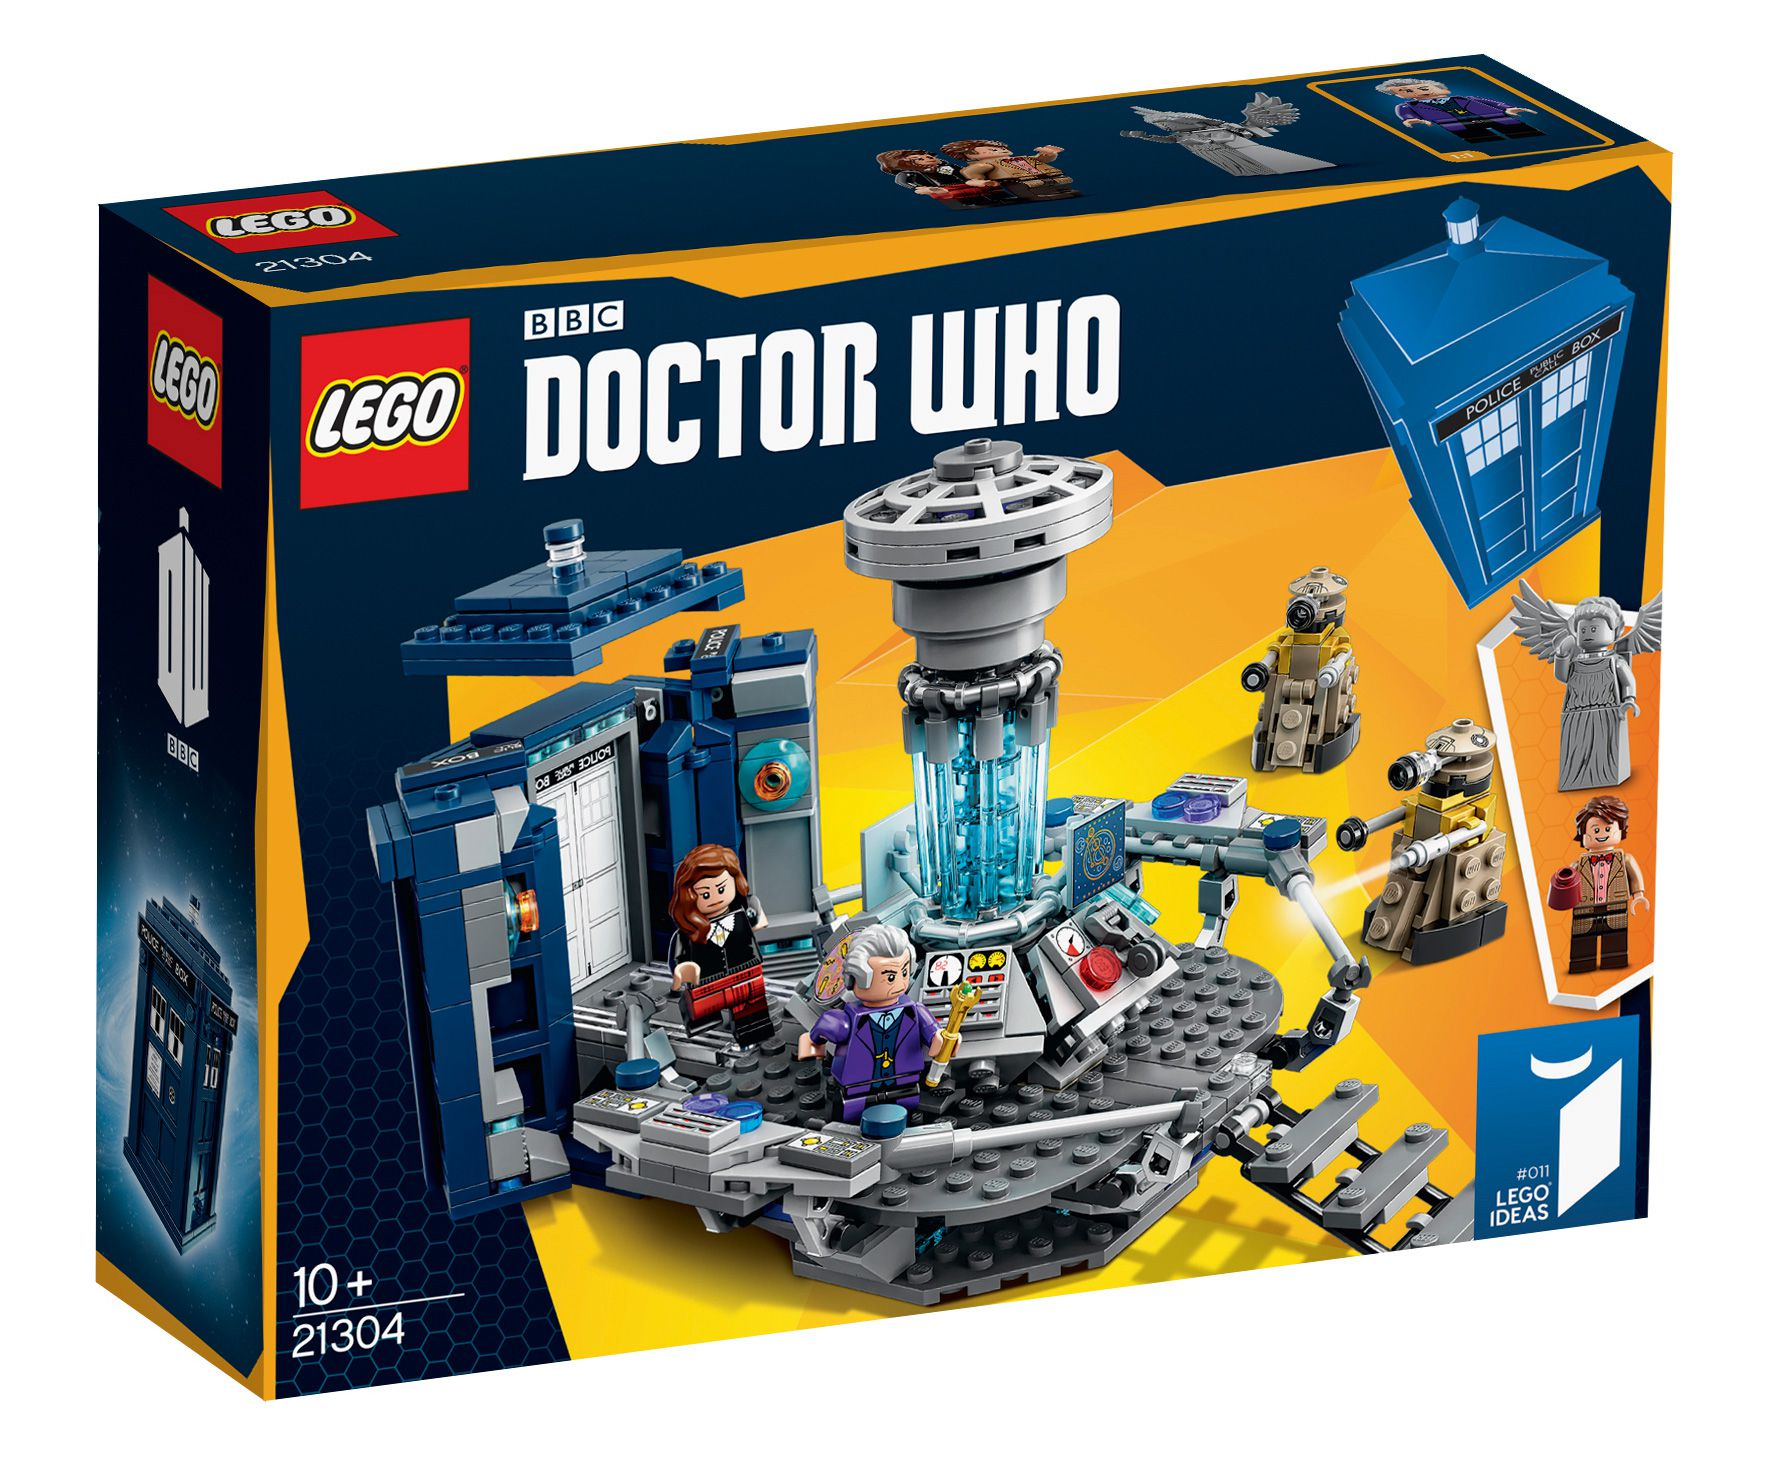 LEGO Ideas 21304 Doctor Who 21304-1_doctor_who_box.jpg